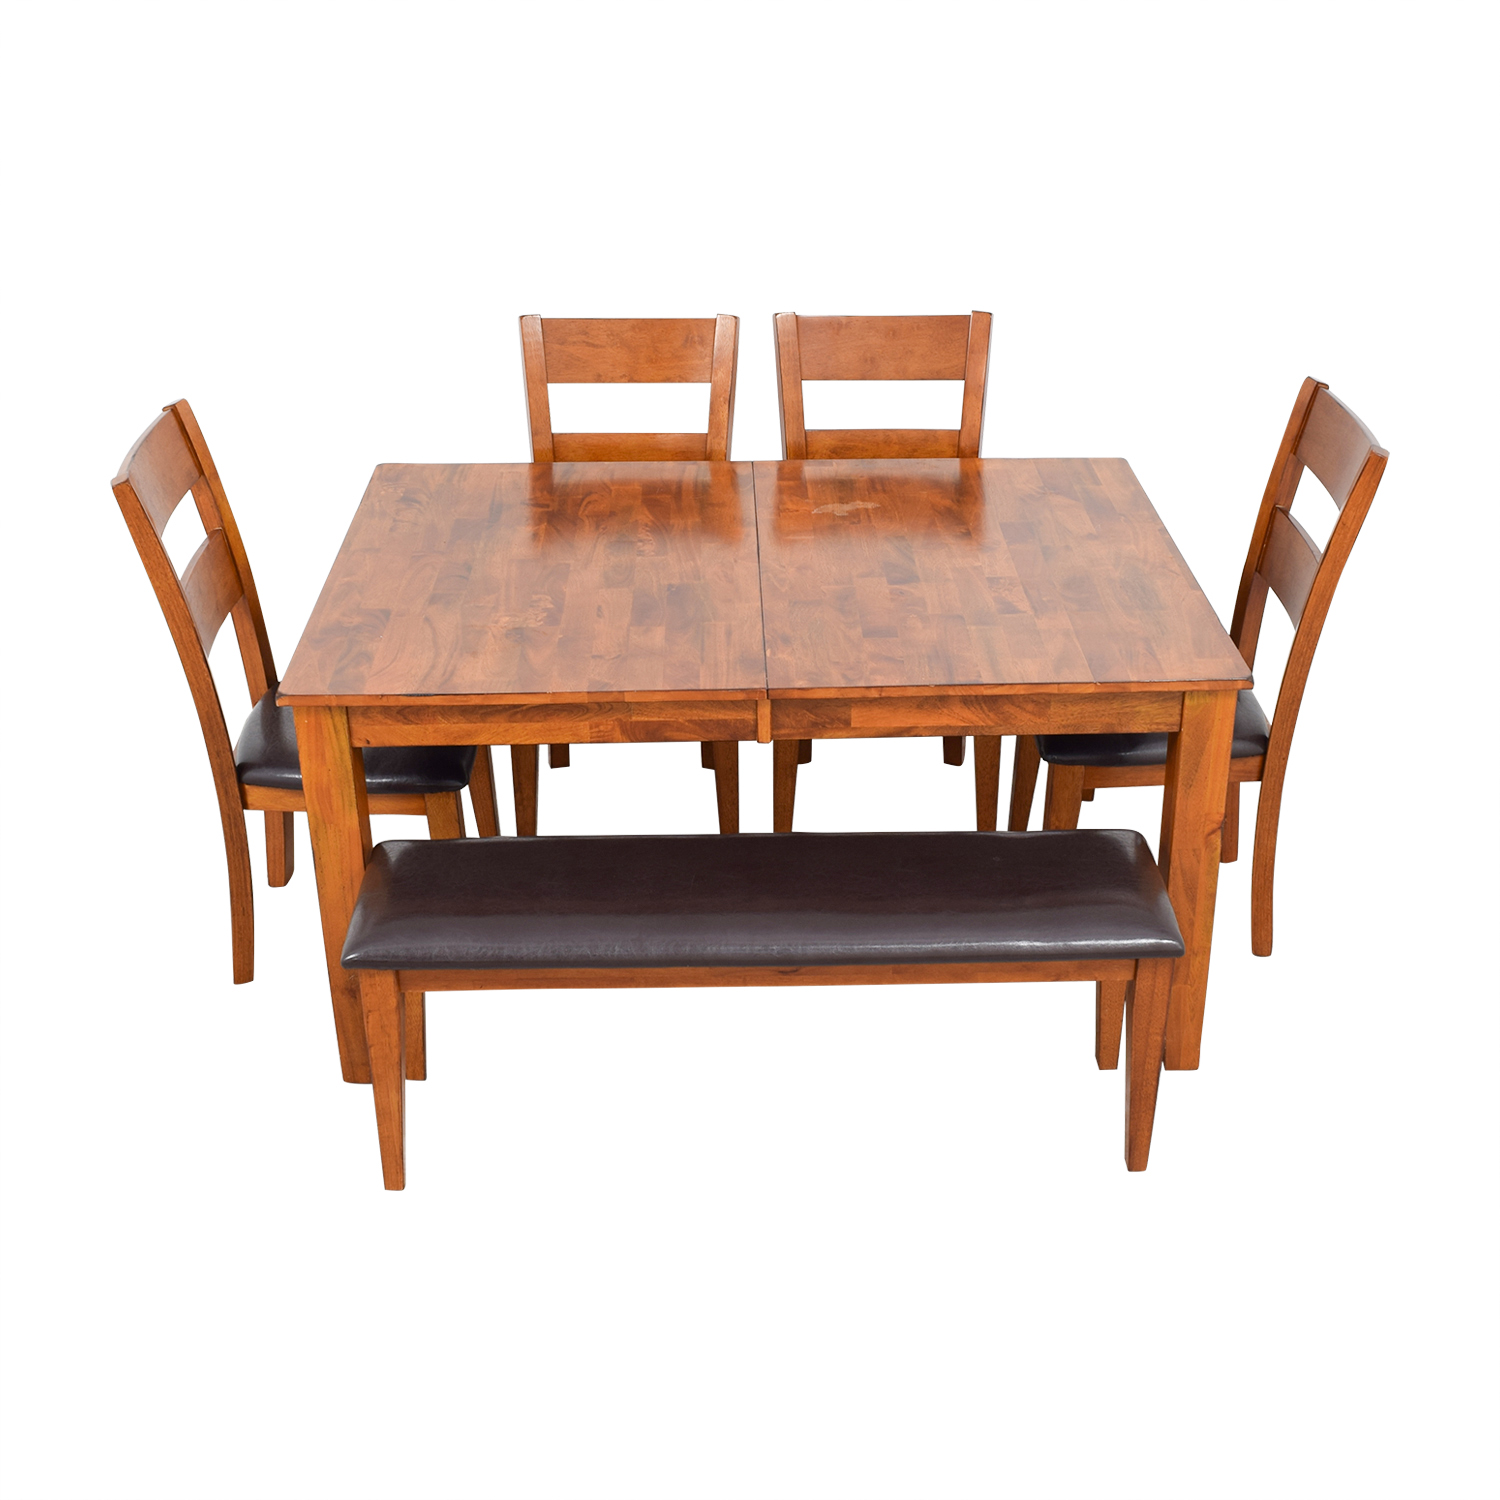 50 Off Steve Silver Co Mango Erfly Leaf Dining Table With Chairs And Bench Tables